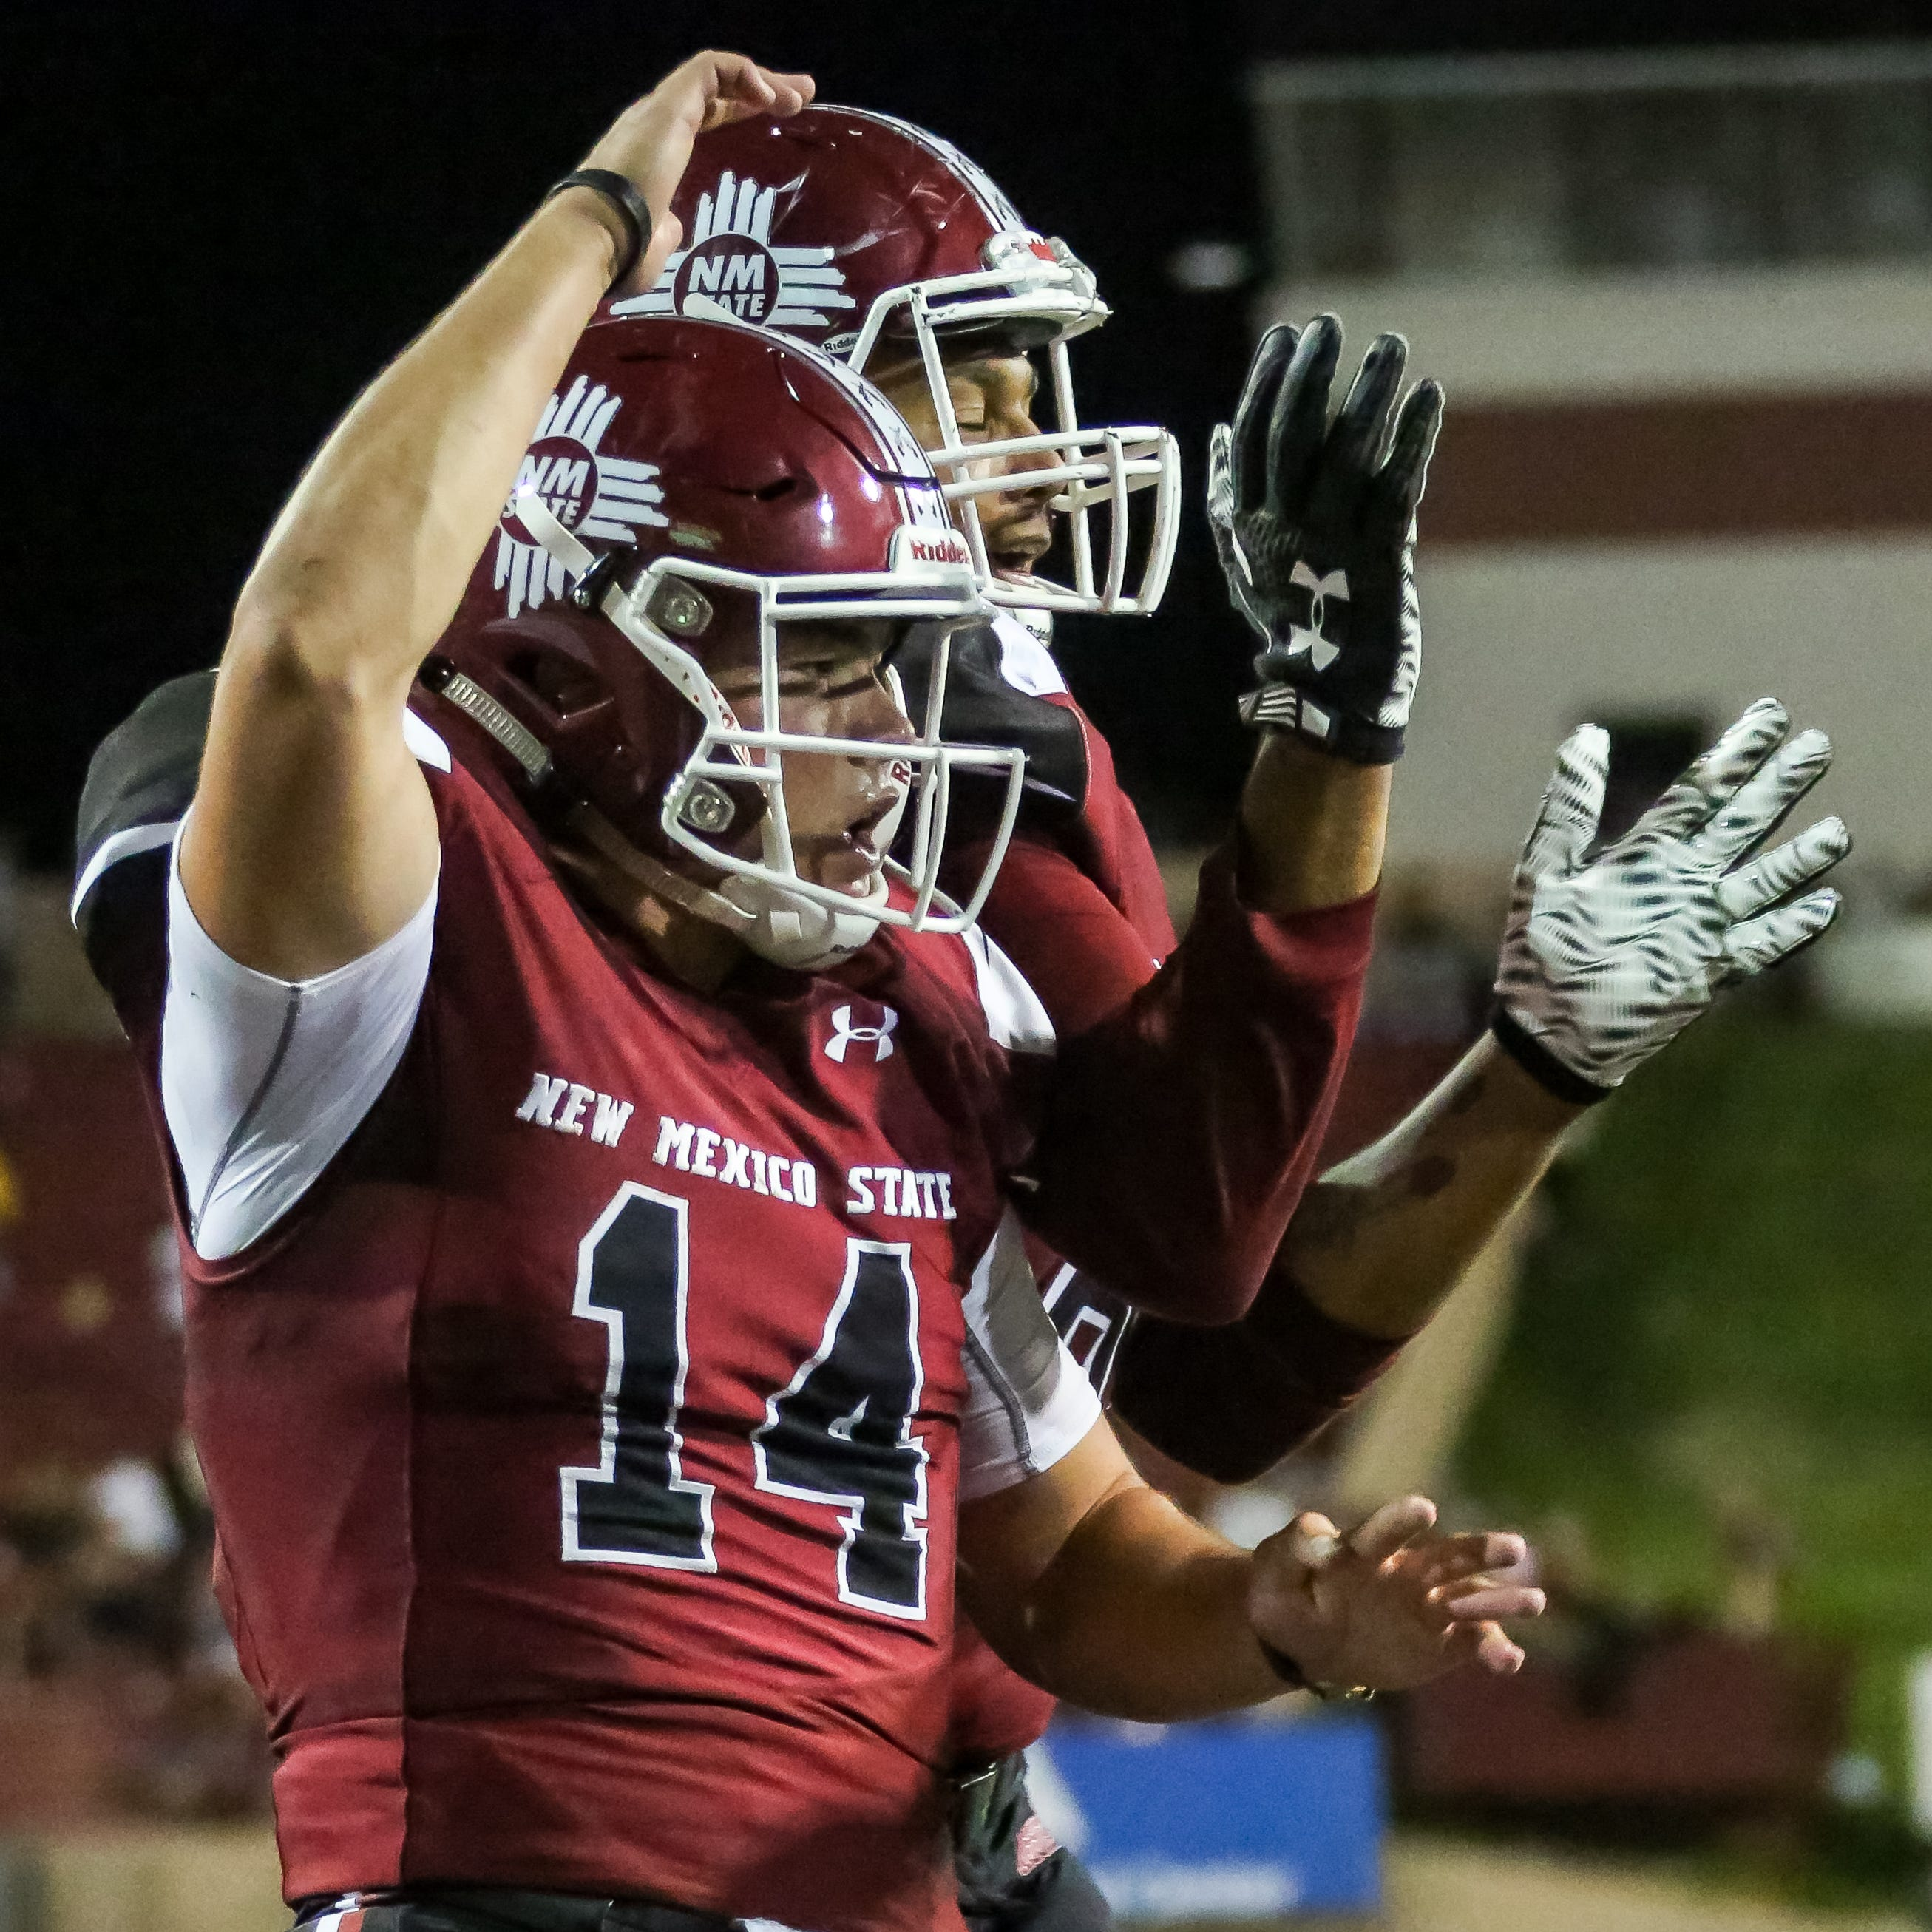 Josh Adkins named New Mexico State starter for UTEP game